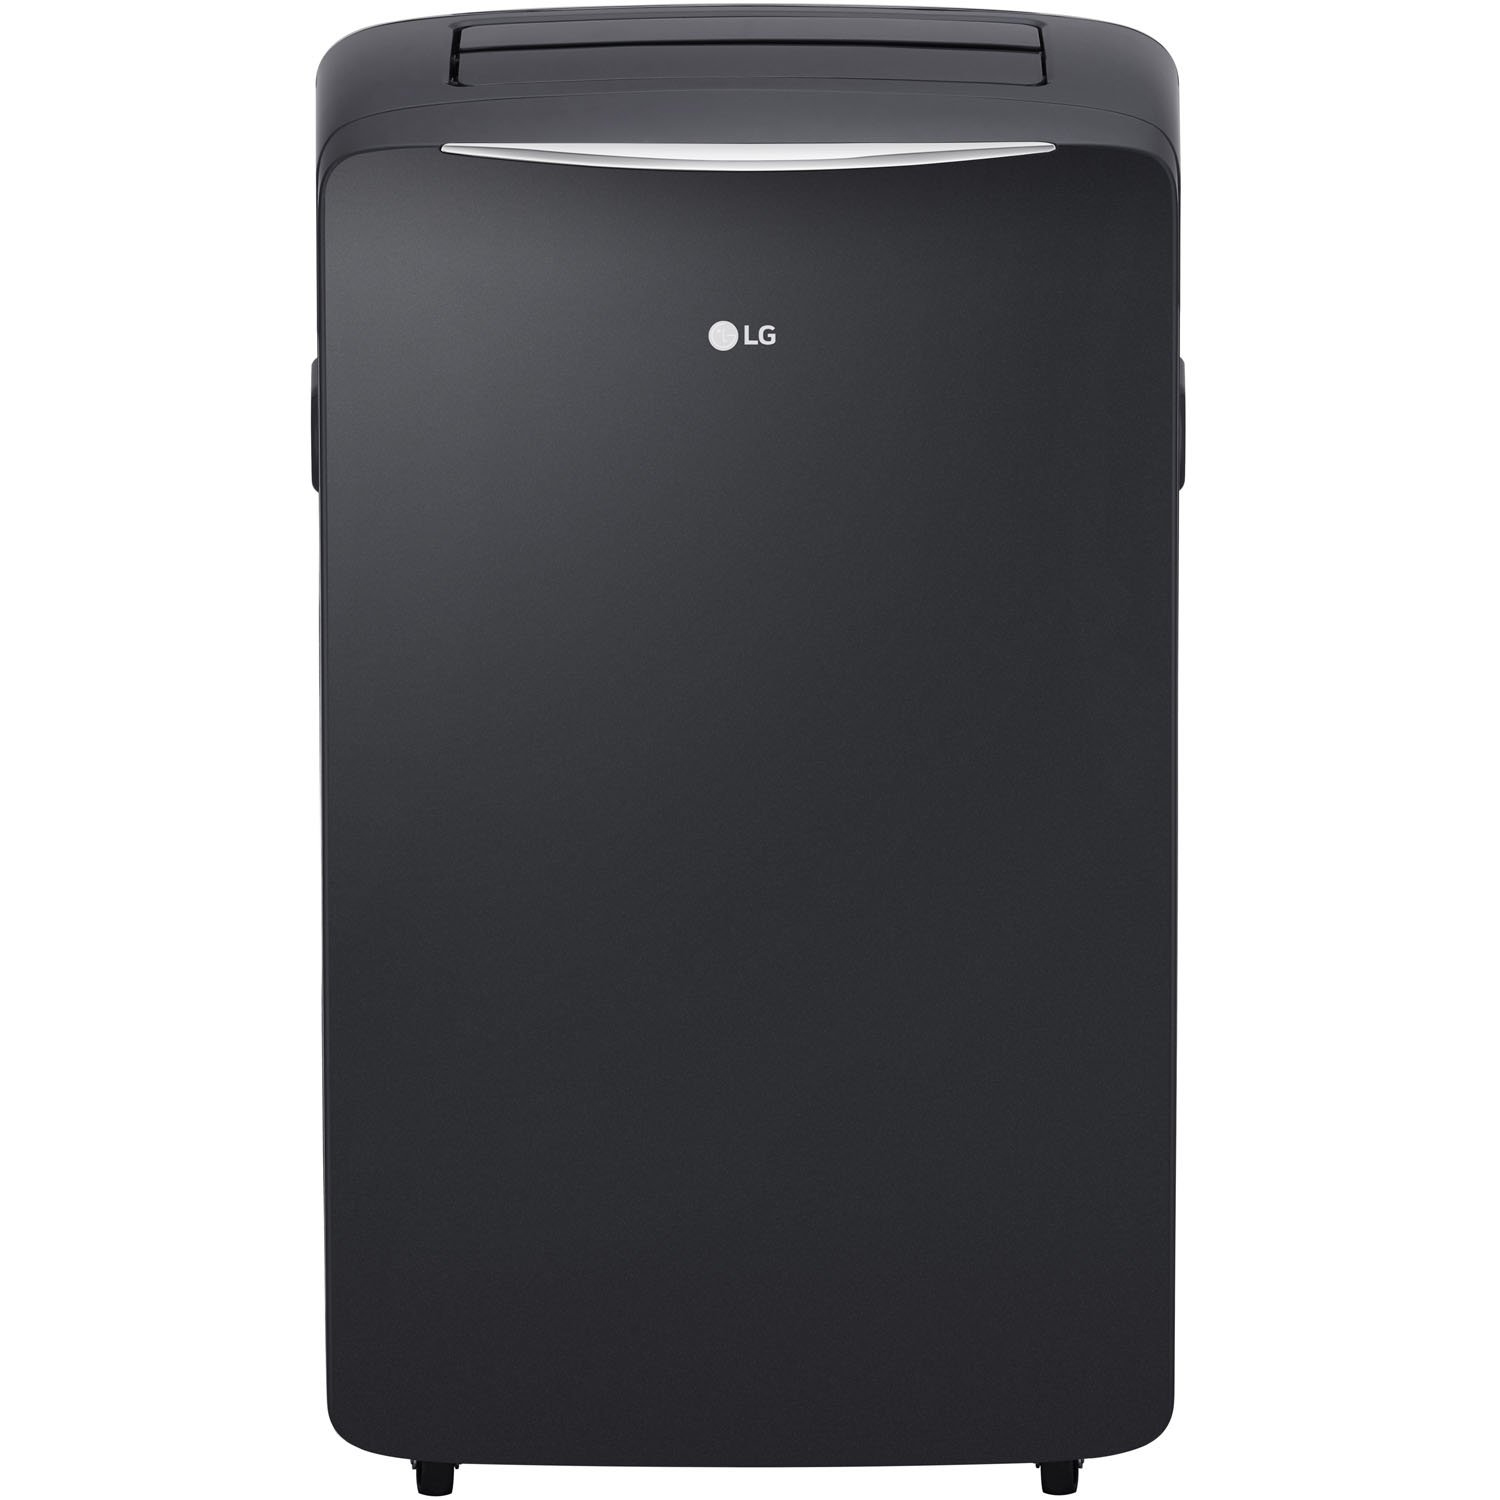 LG LP1417SHR 115V Portable Air Conditioner with Supplemental Heating in Graphite Gray for Rooms up to 400-Sq. Ft.